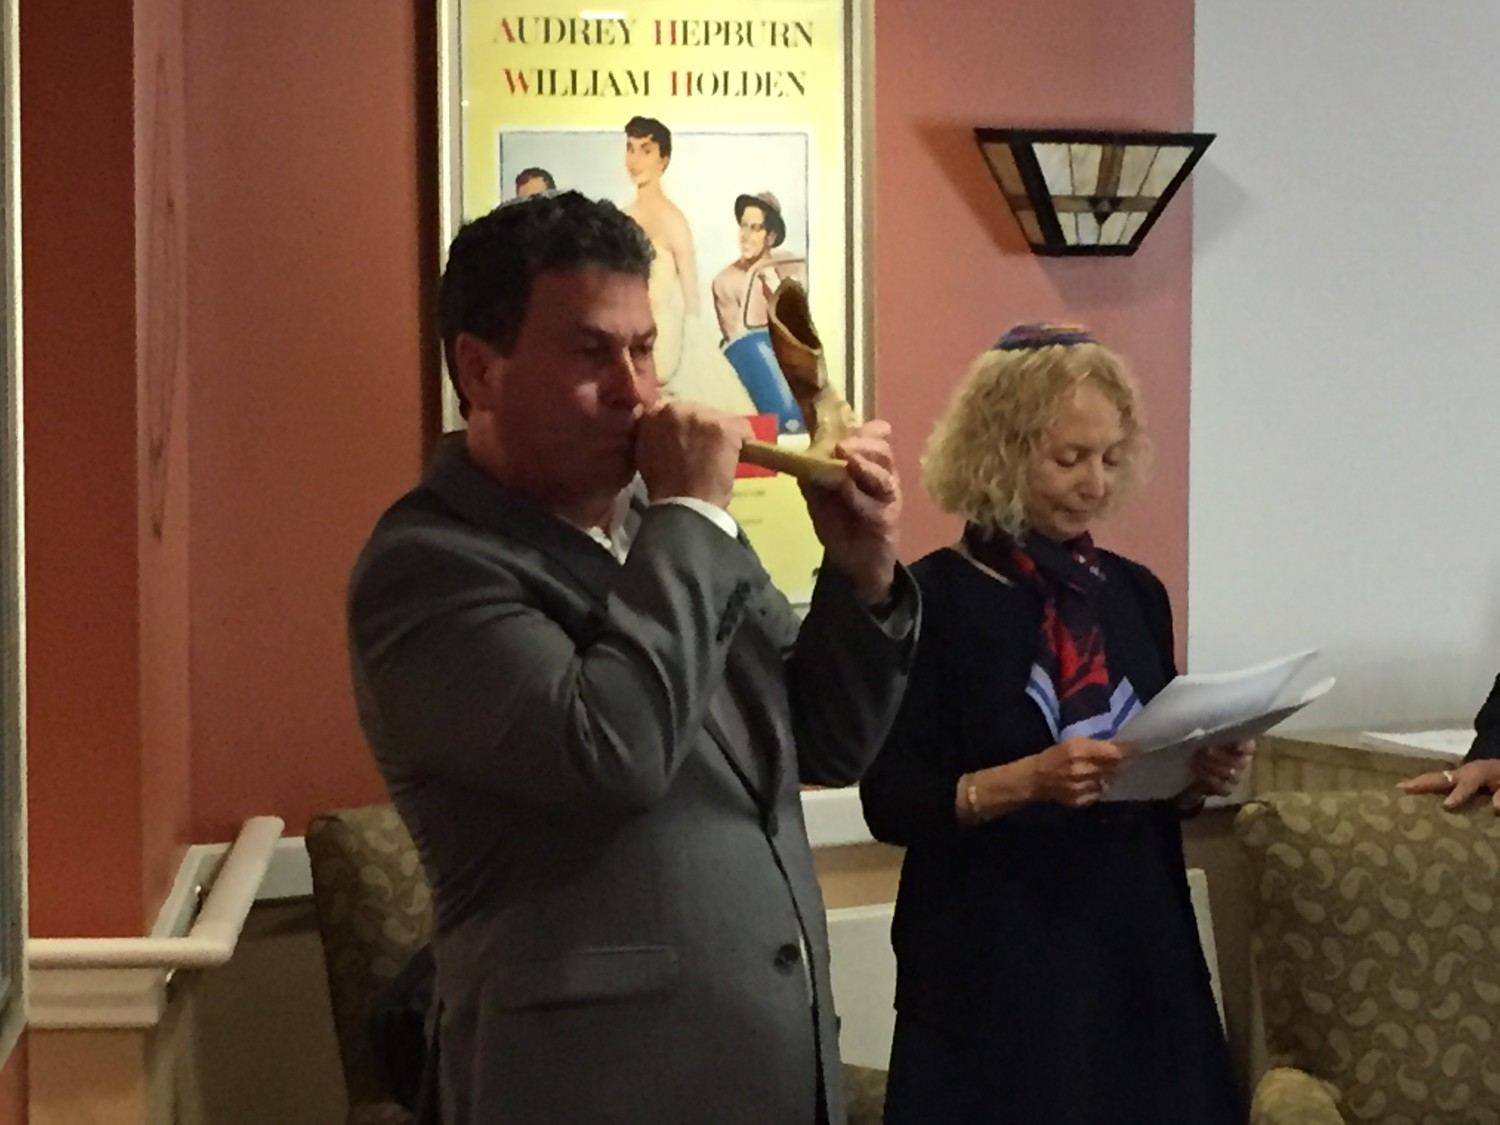 Scott Schnee, with Louise Skolnik, right, blew the shofar, a traditional musical horn.